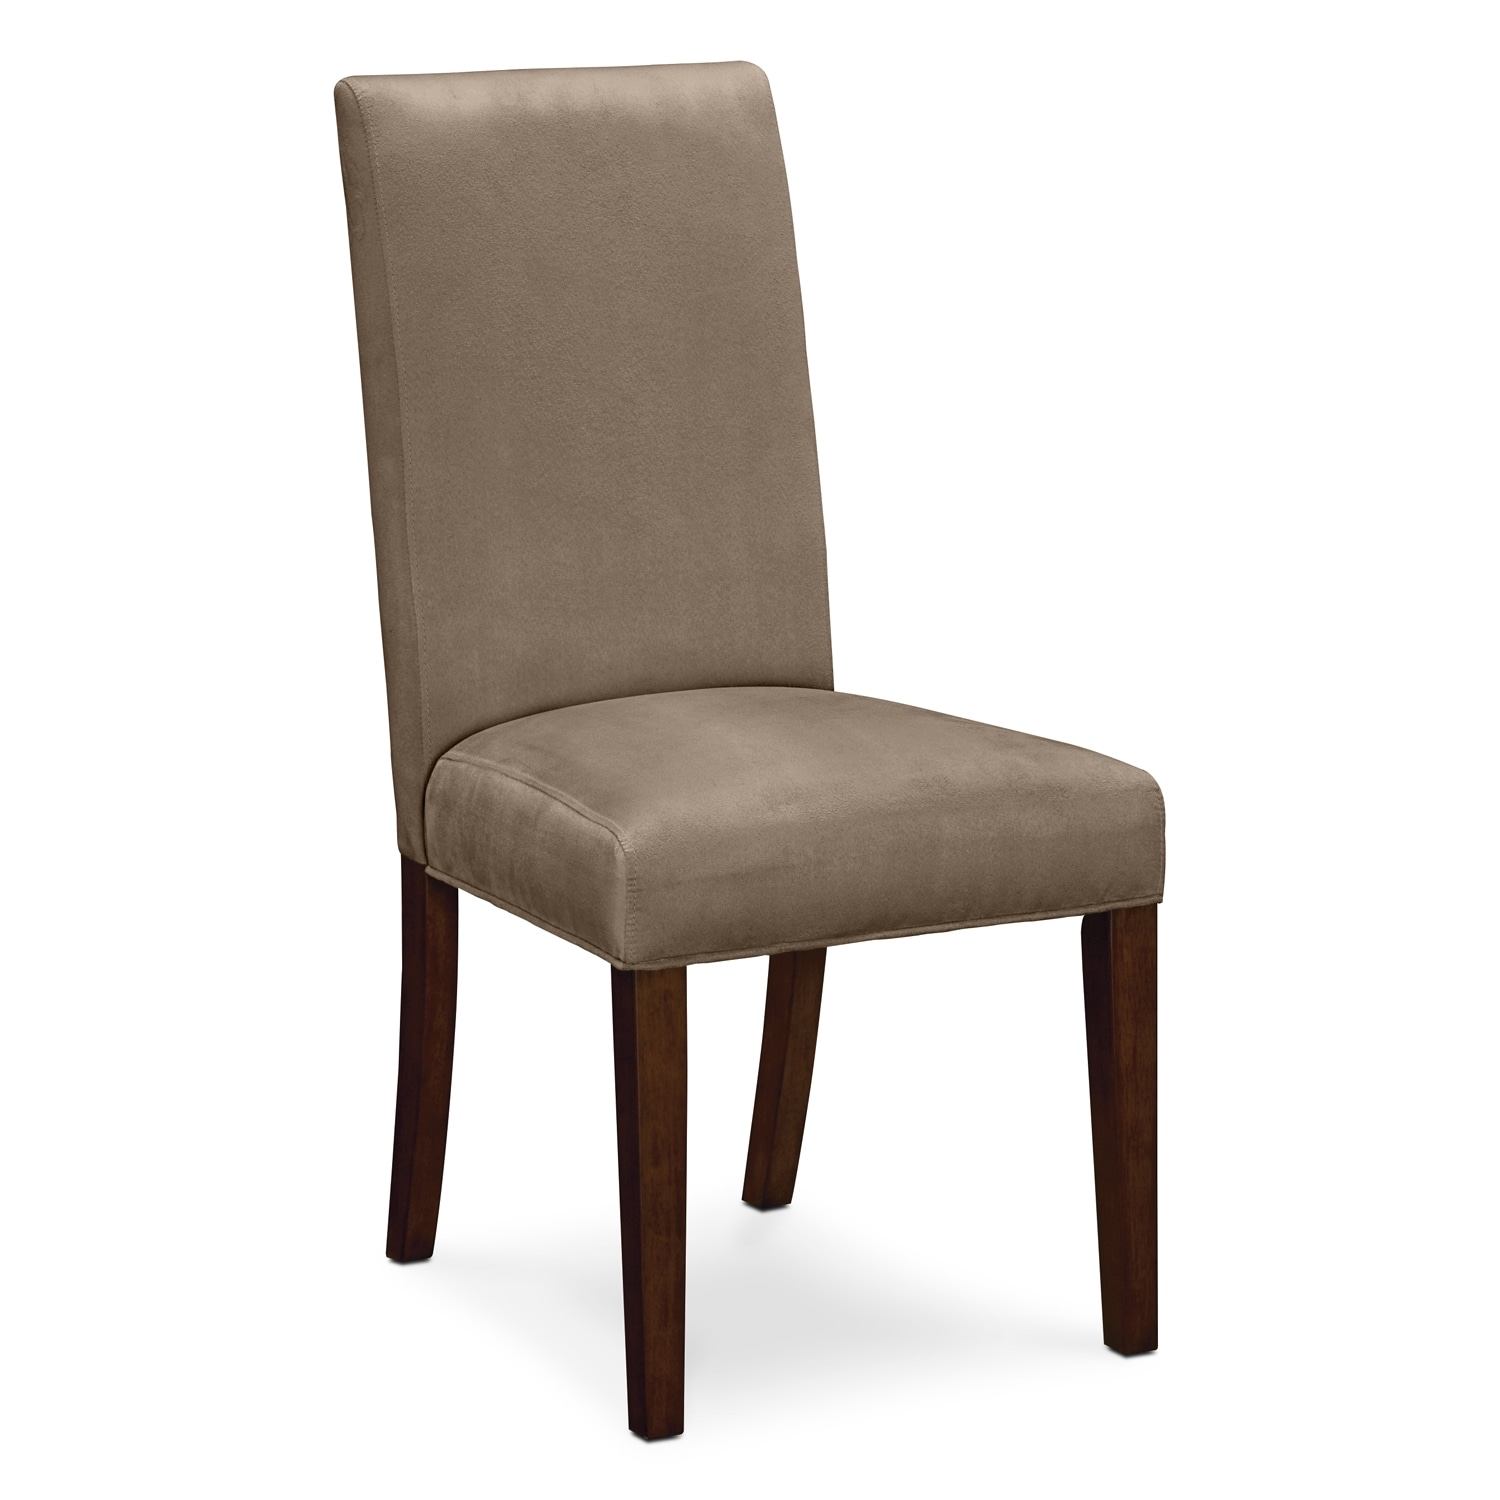 [Alcove Beige Chair]